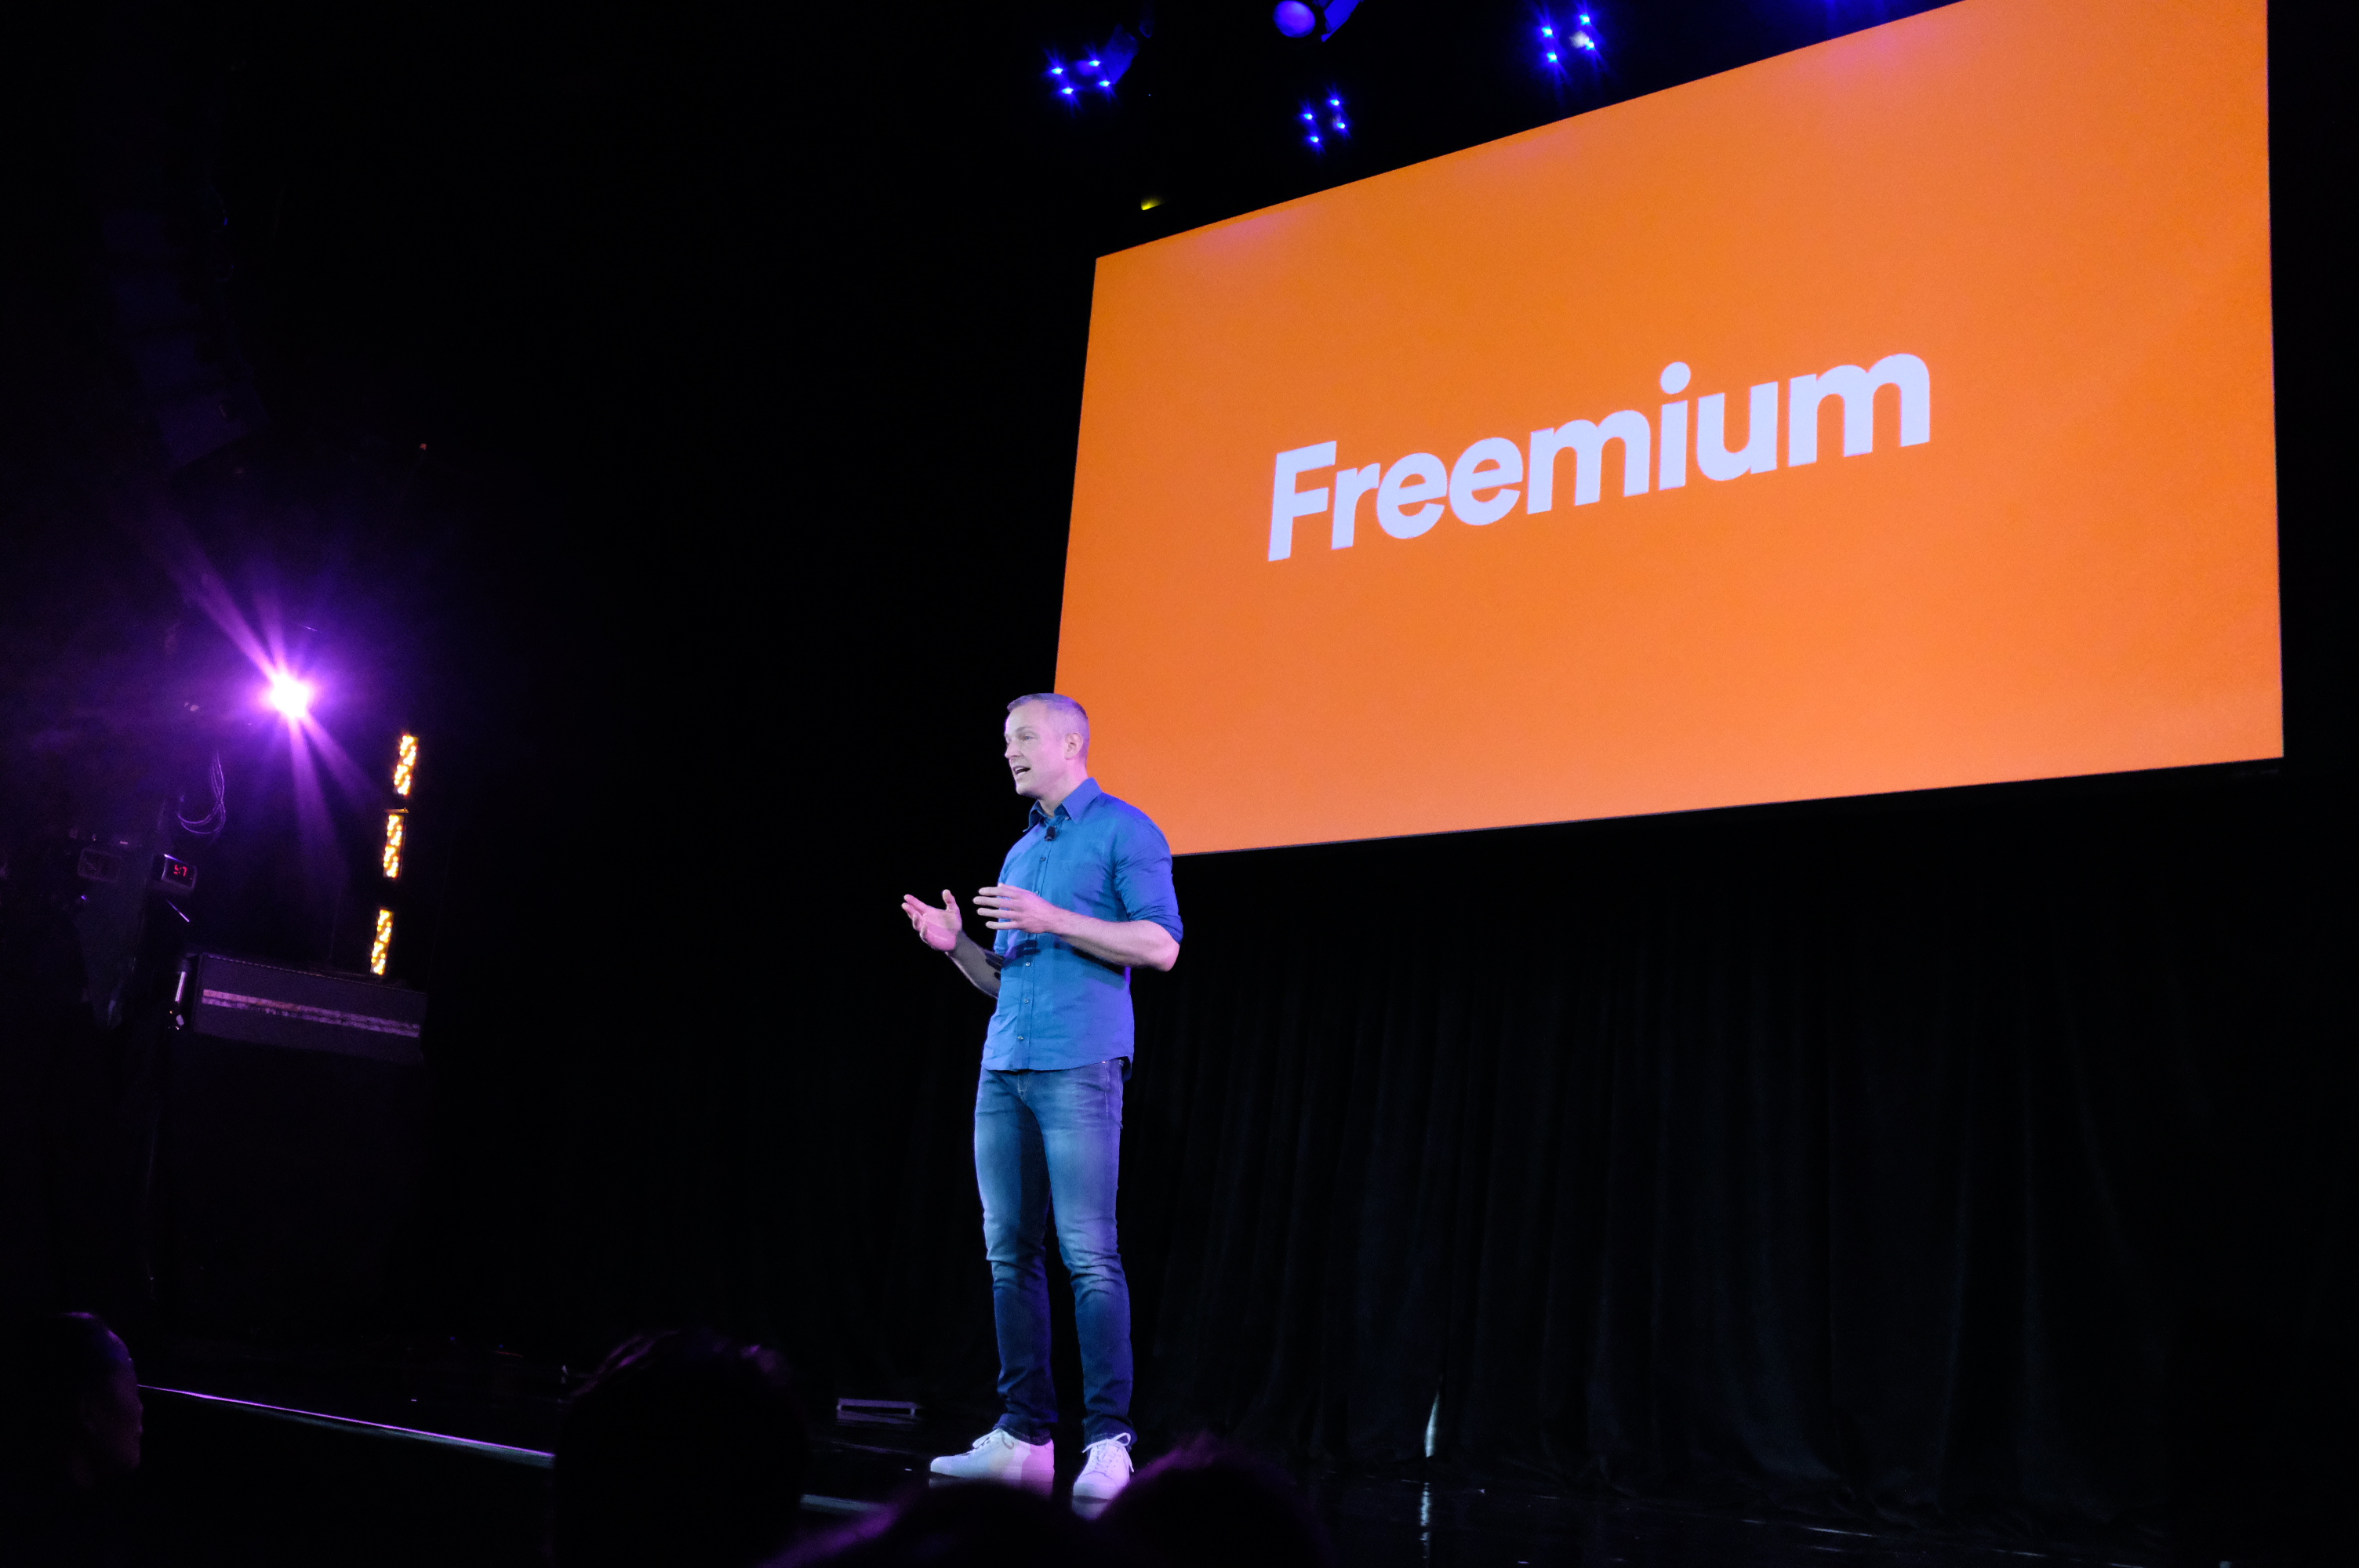 Spotify beefs up its free tier as Apple Music gains traction		 		 	Jordan Crook         @	       	7 hours